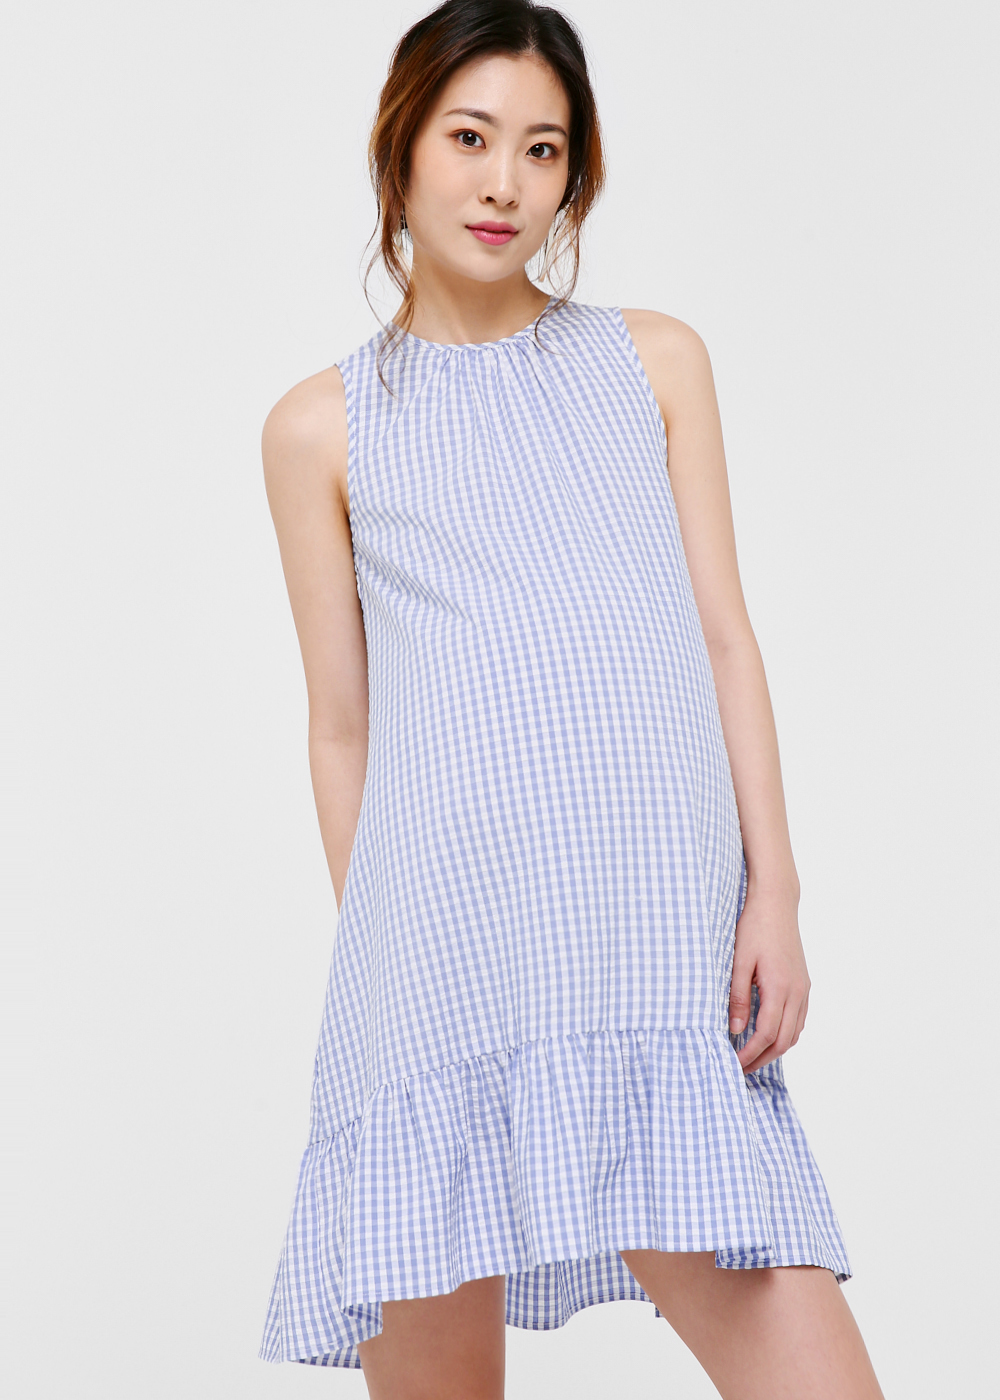 Brenna Ruffle Hem Gingham Dress